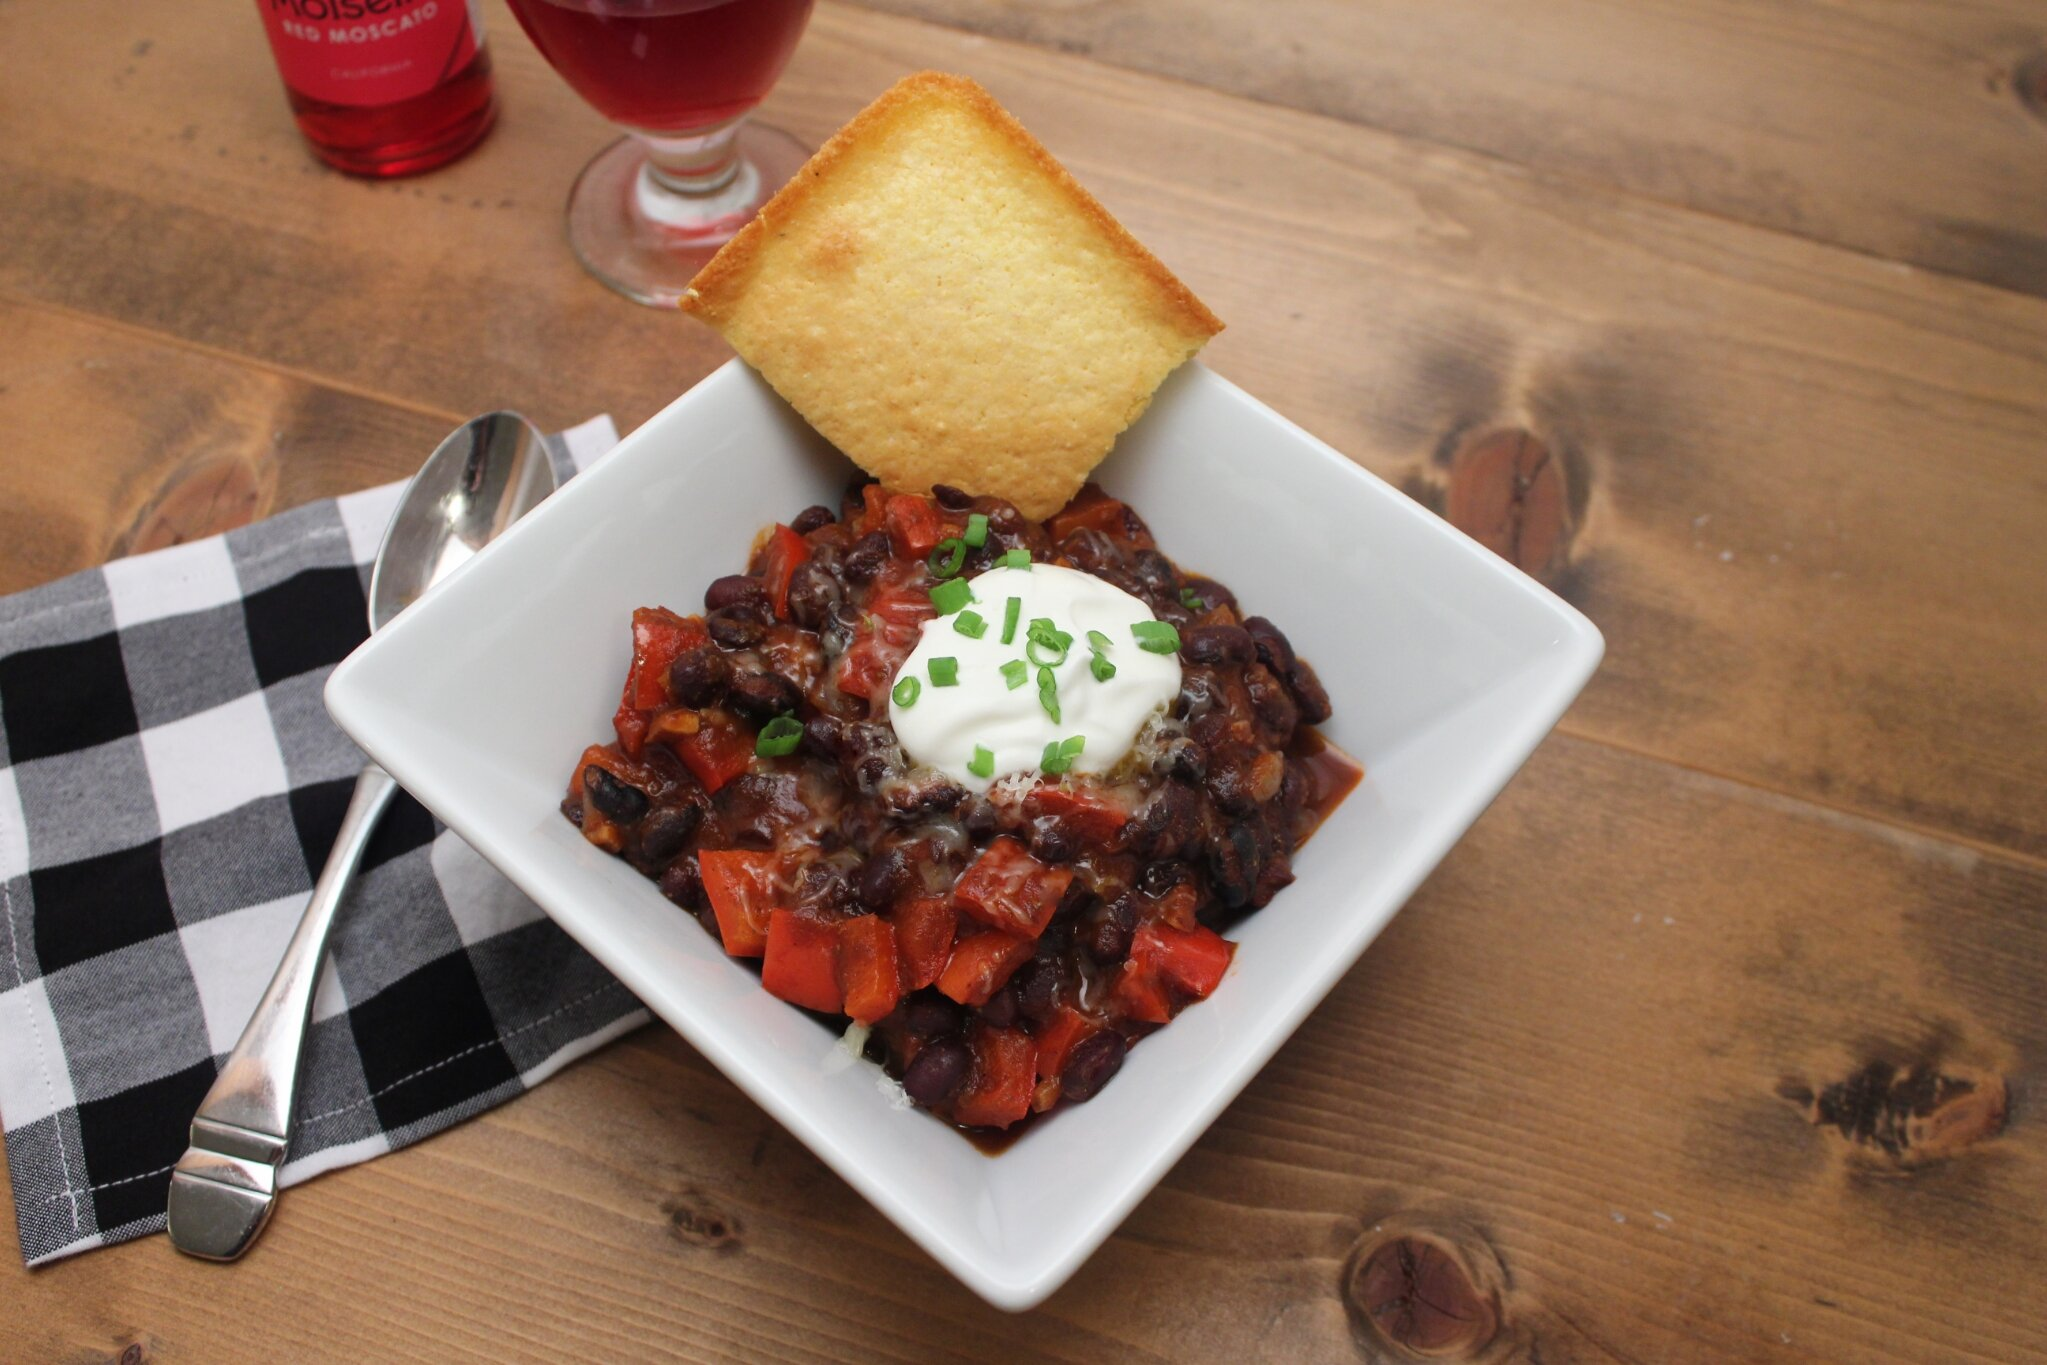 vegetarian chili with black beans